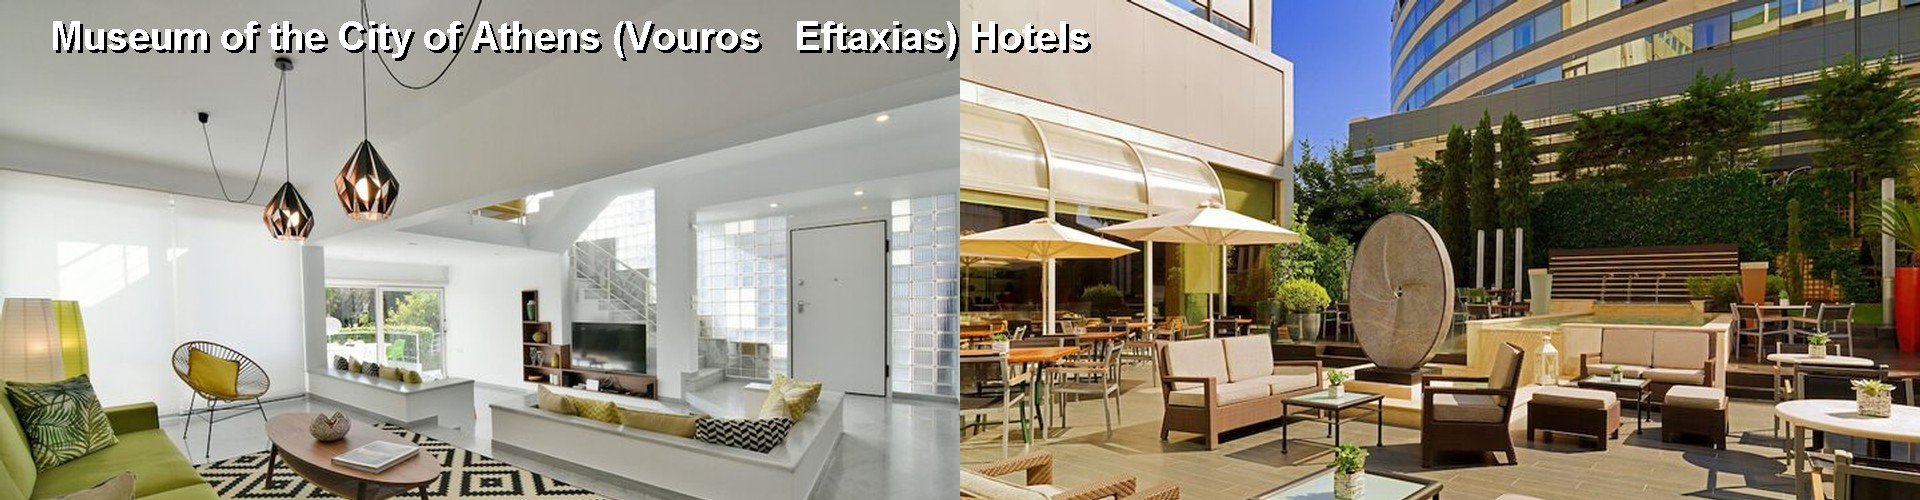 5 Best Hotels near Museum of the City of Athens (Vouros Eftaxias)